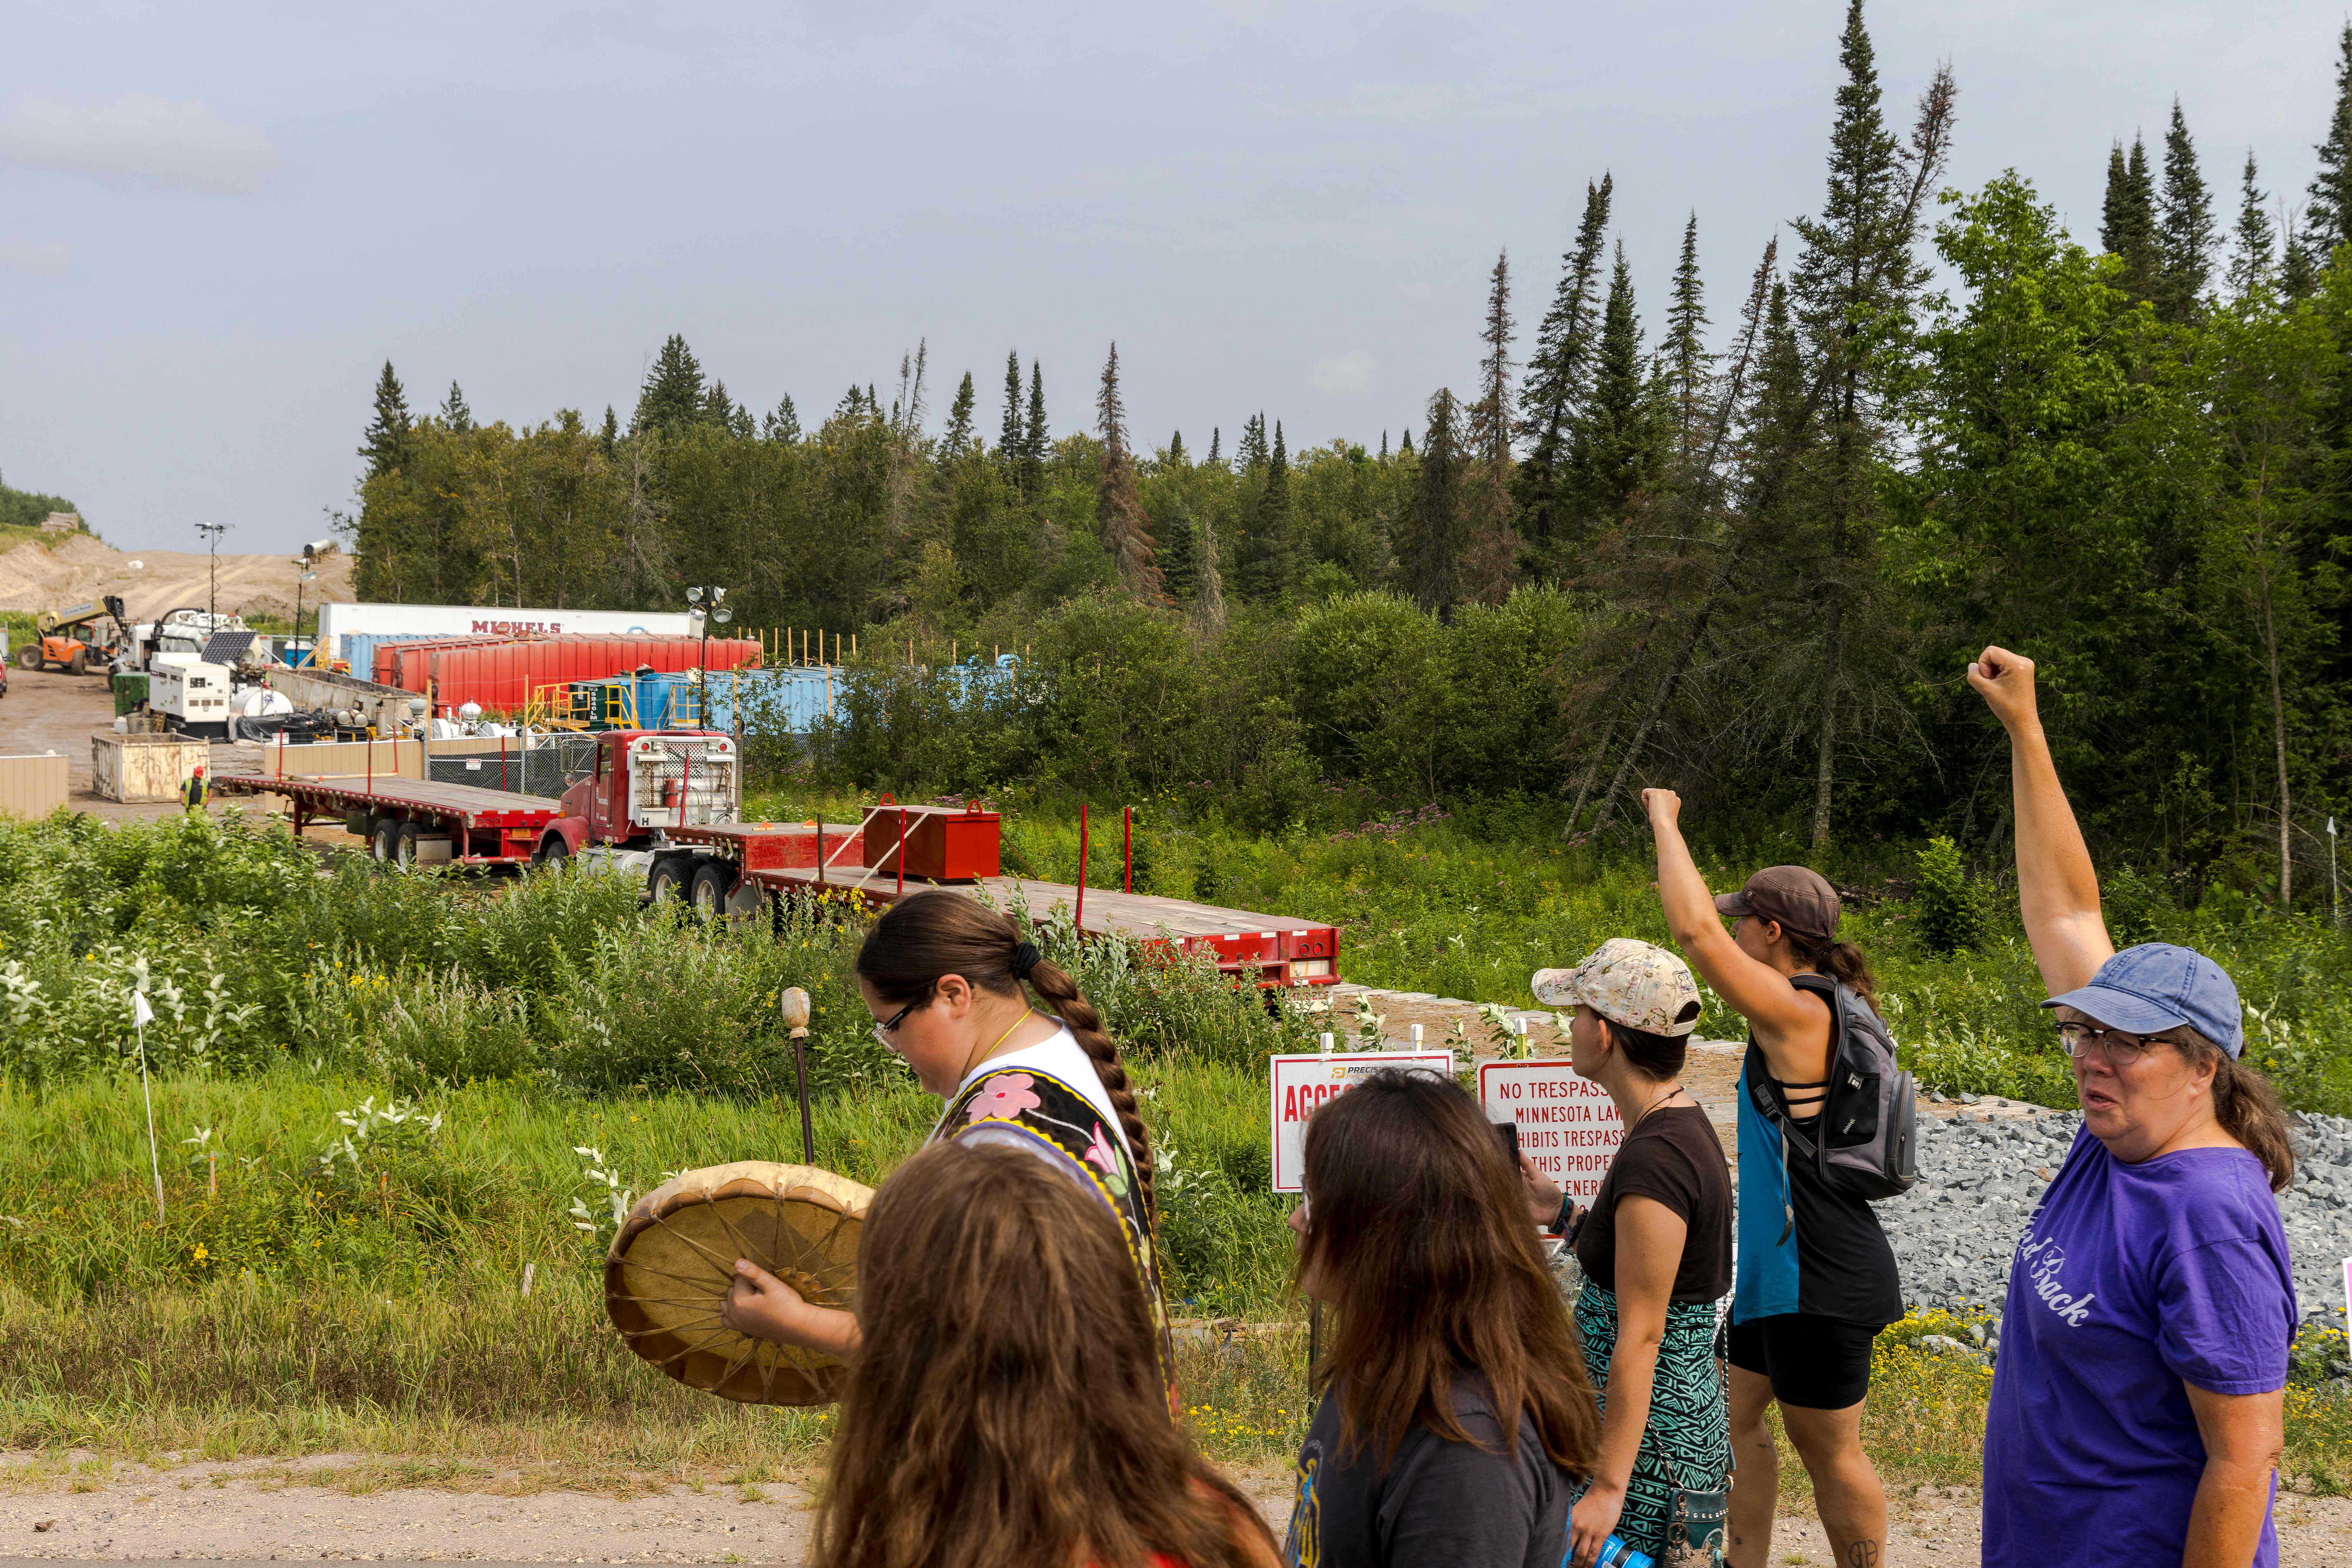 A group of Indigenous people and activists raise their fists as they pass Sections of the Enbridge Line 3 pipeline construction during the 'Treaty People Walk for Water' event near the La Salle Lake State Park in Solway, Minnesota on Aug. 7, 2021. Credit: Kerem Yucel/AFP via Getty Images